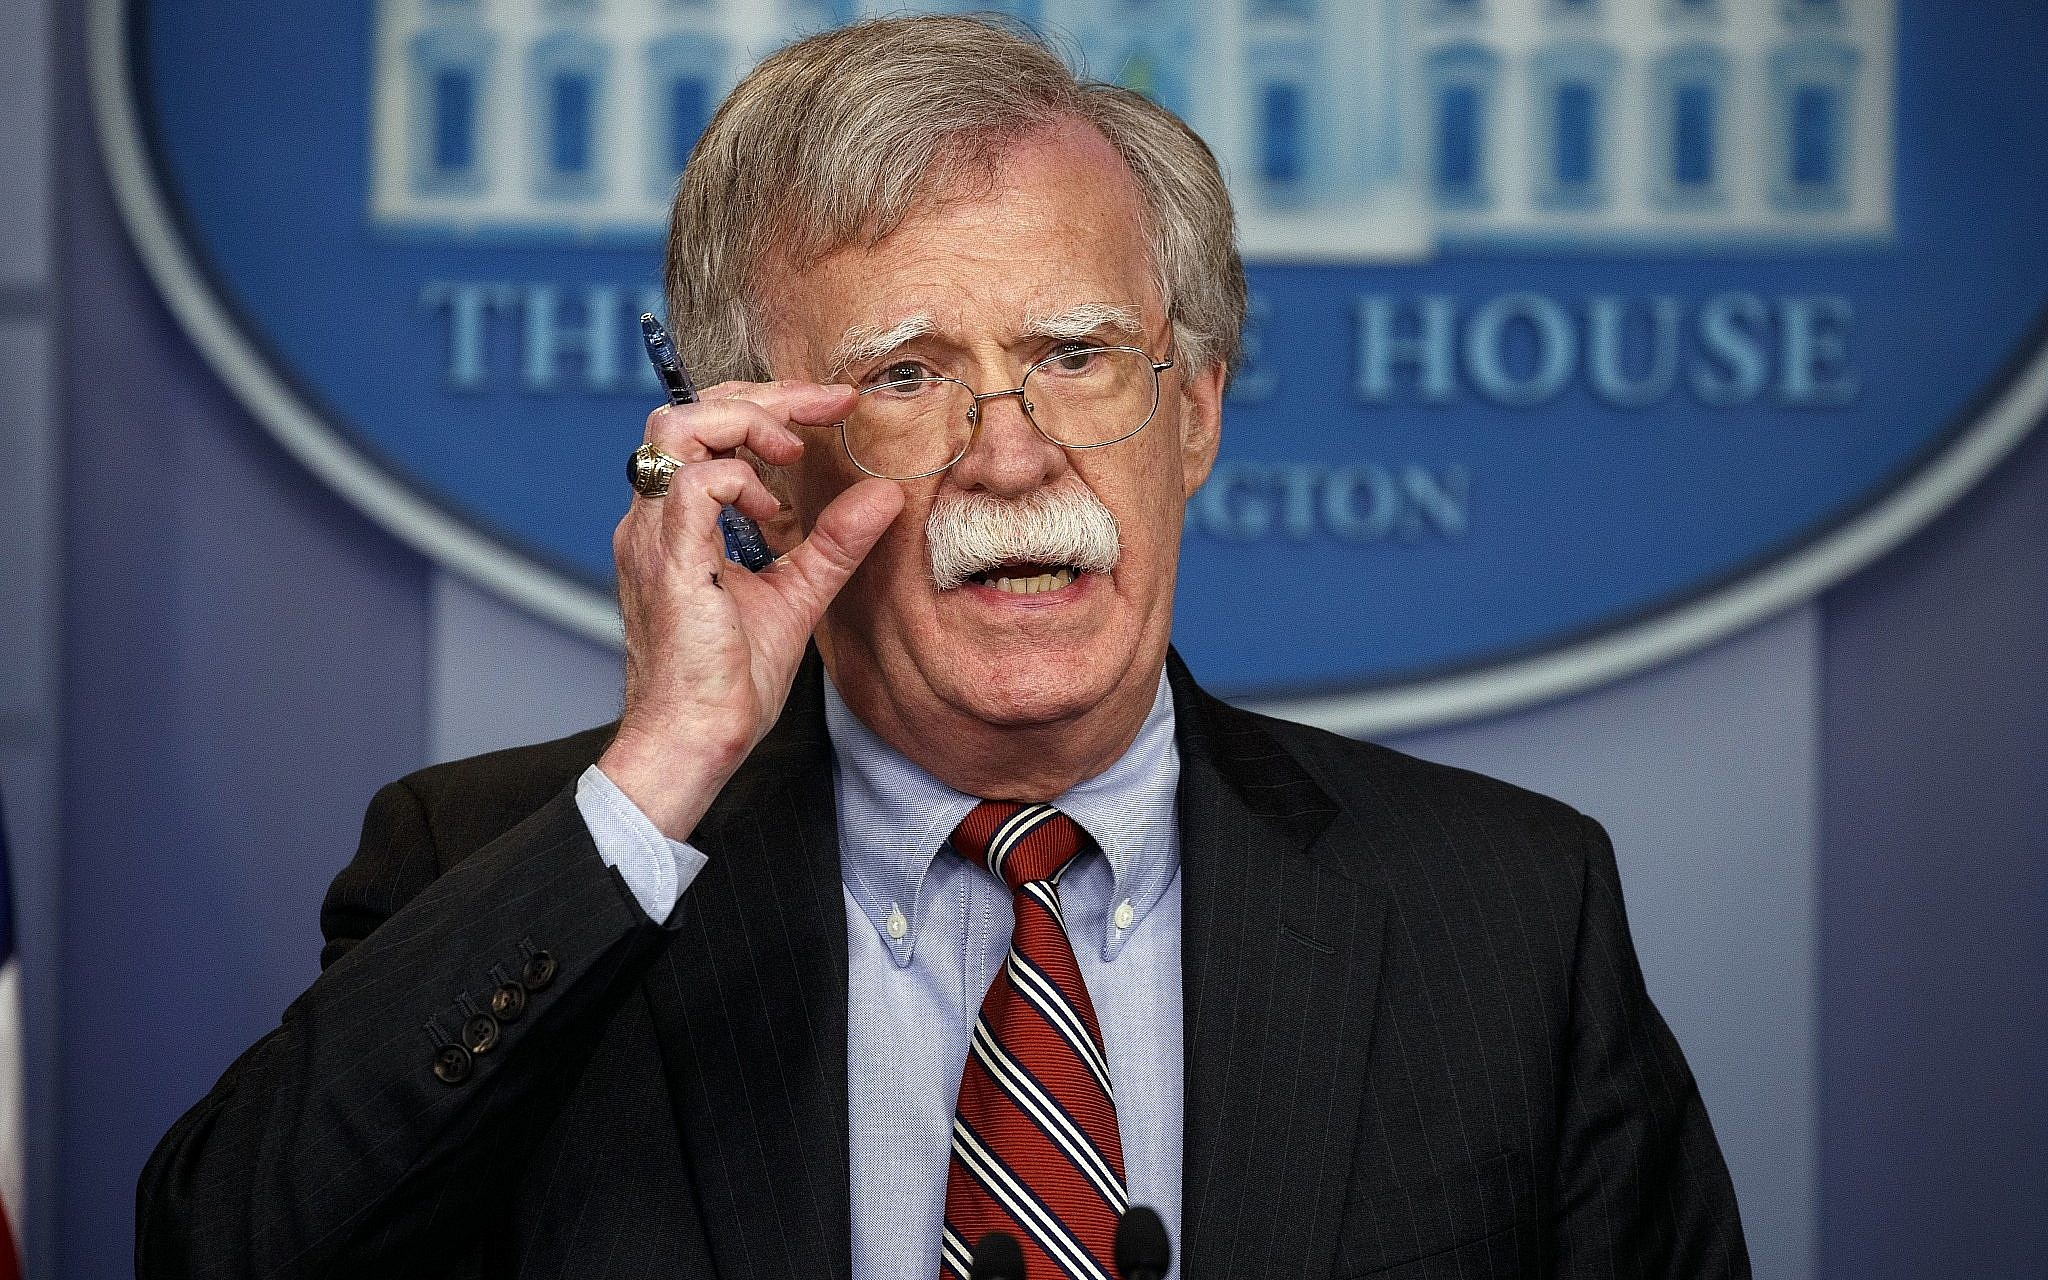 Bolton and Netanyahu Urge Nations to Rectify 'Wretched, Disastrous' Iran Deal